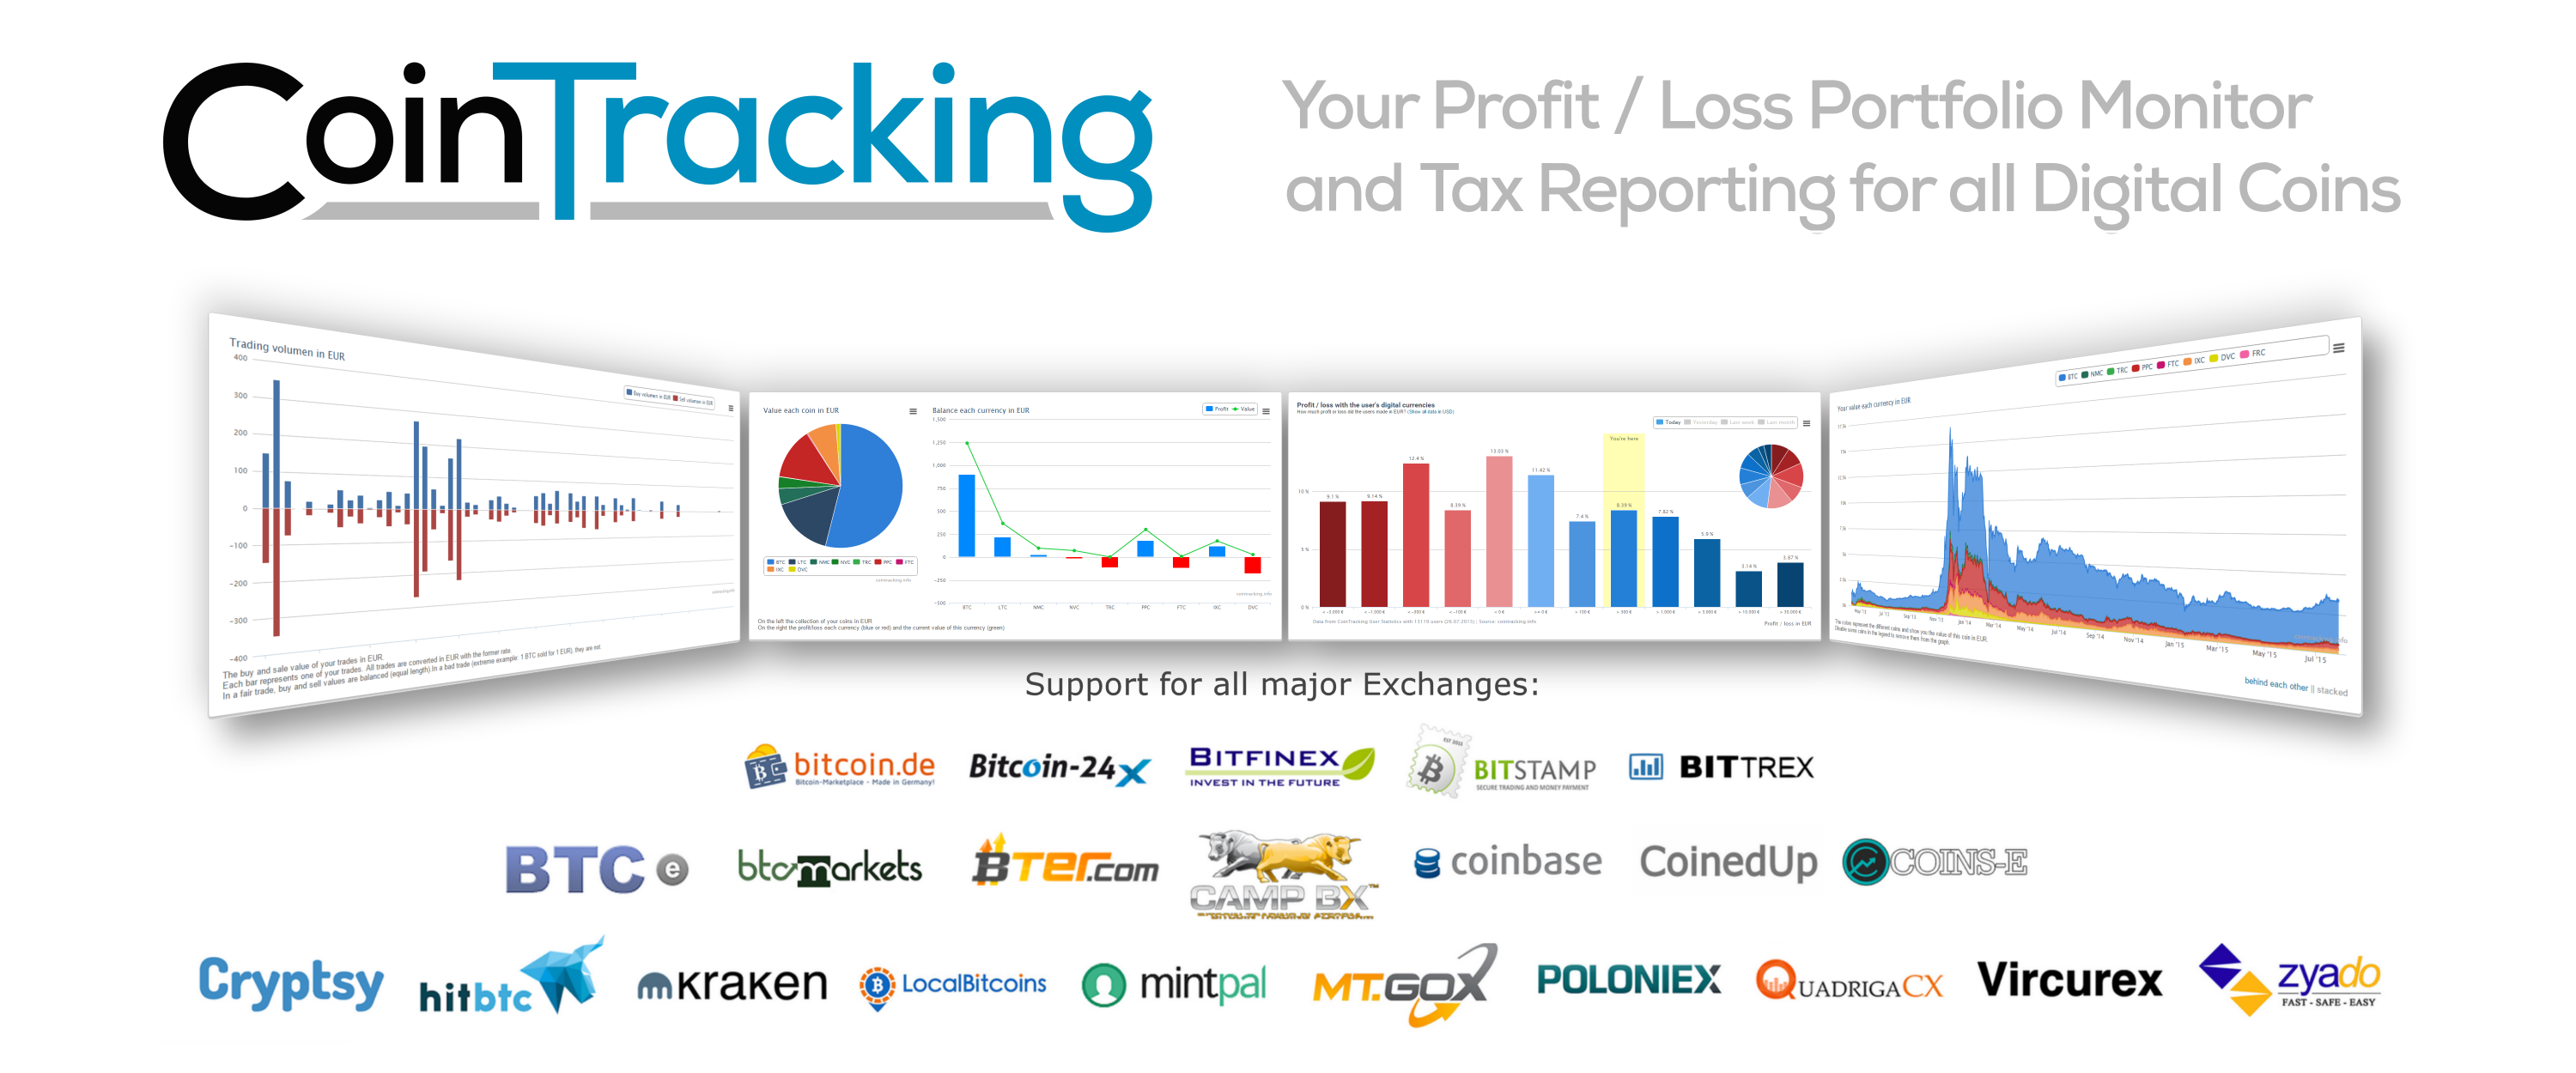 About CoinTracking Homepage